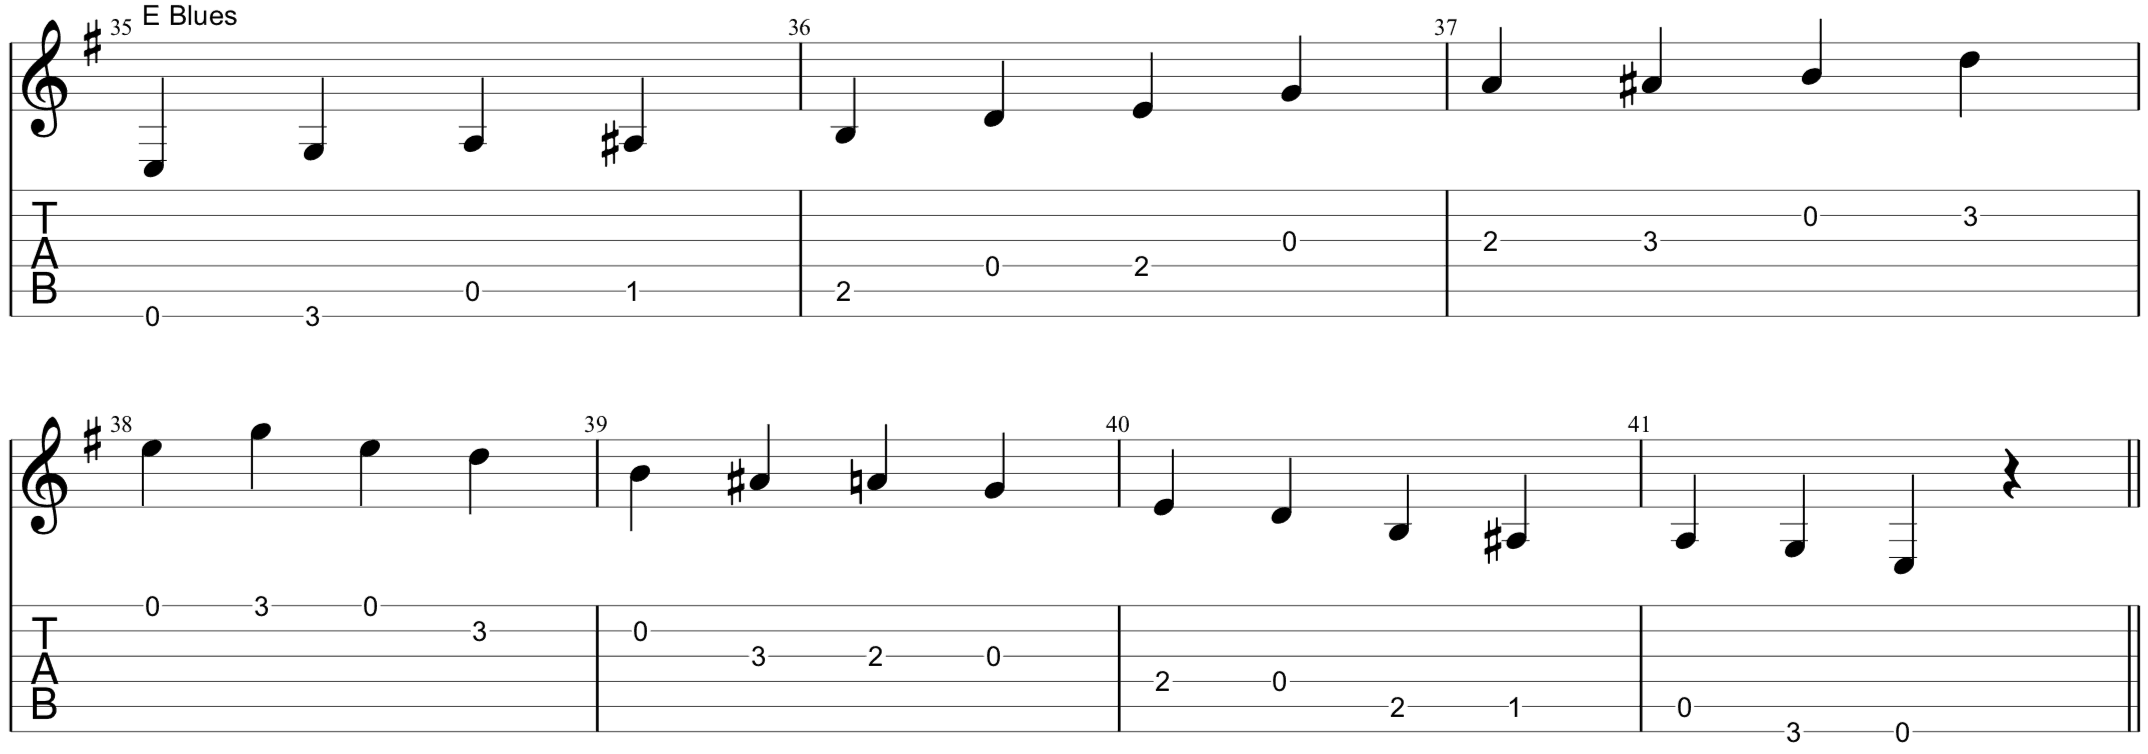 E Blues scale with TAB